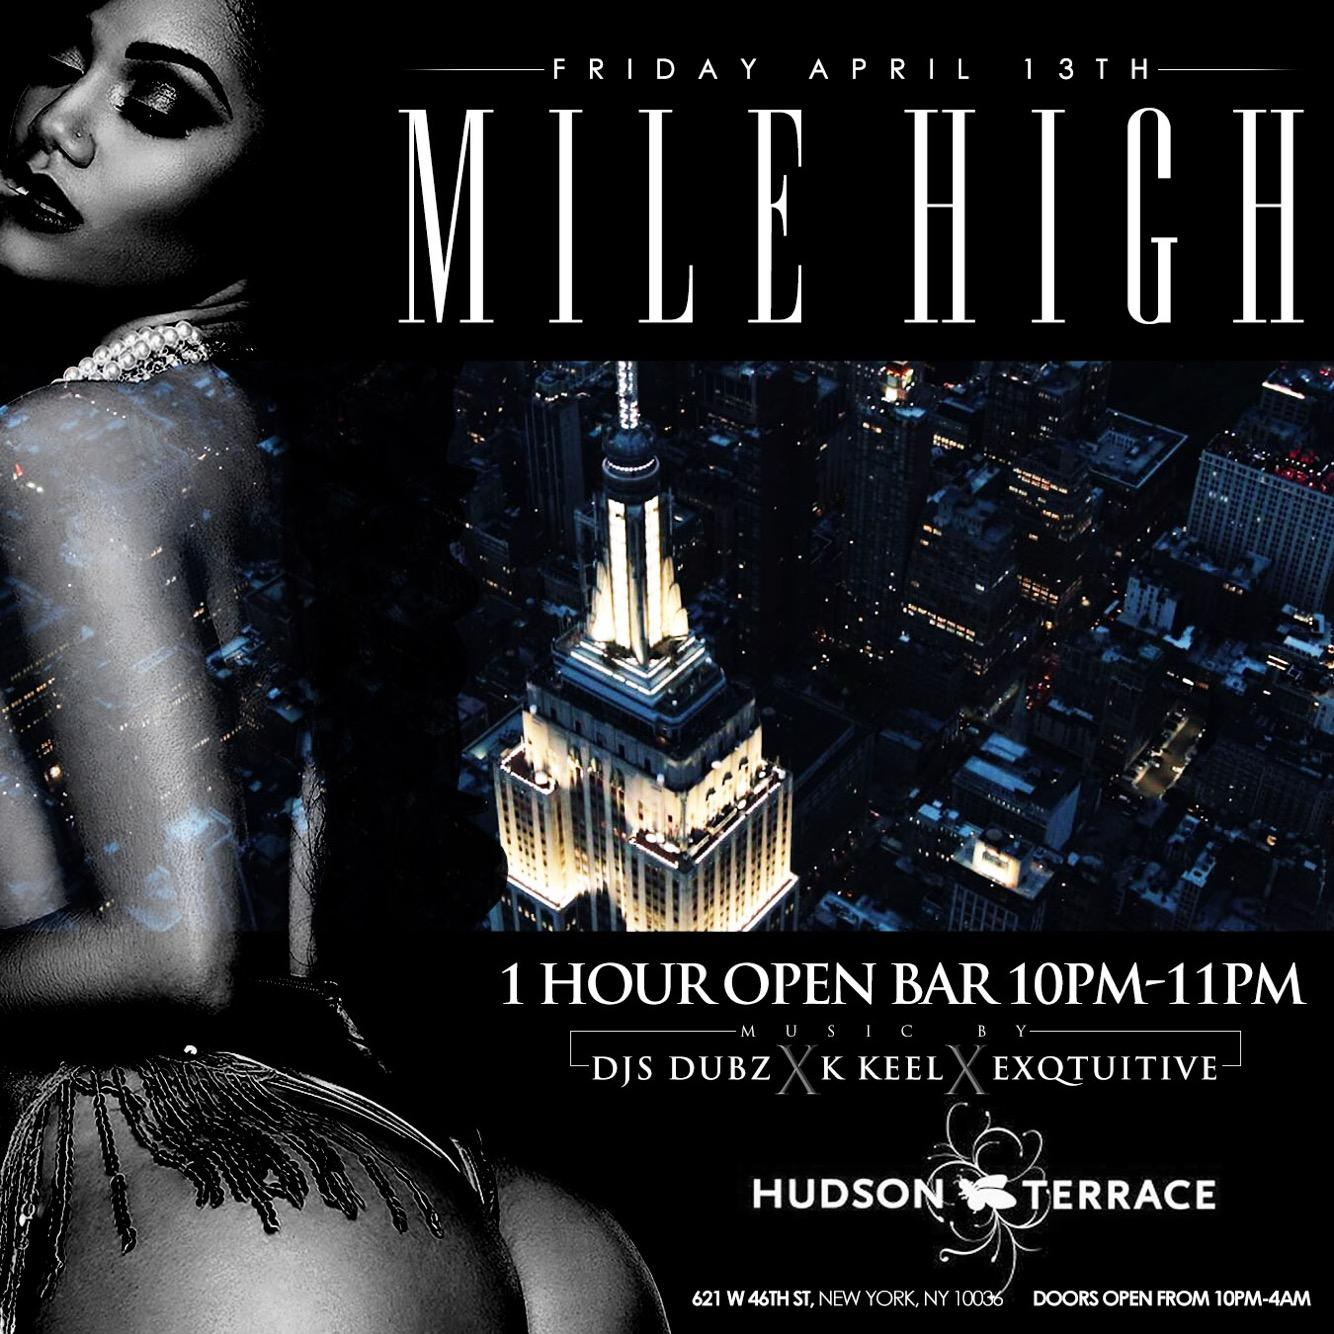 Mile High Rooftop Night Party in NYC